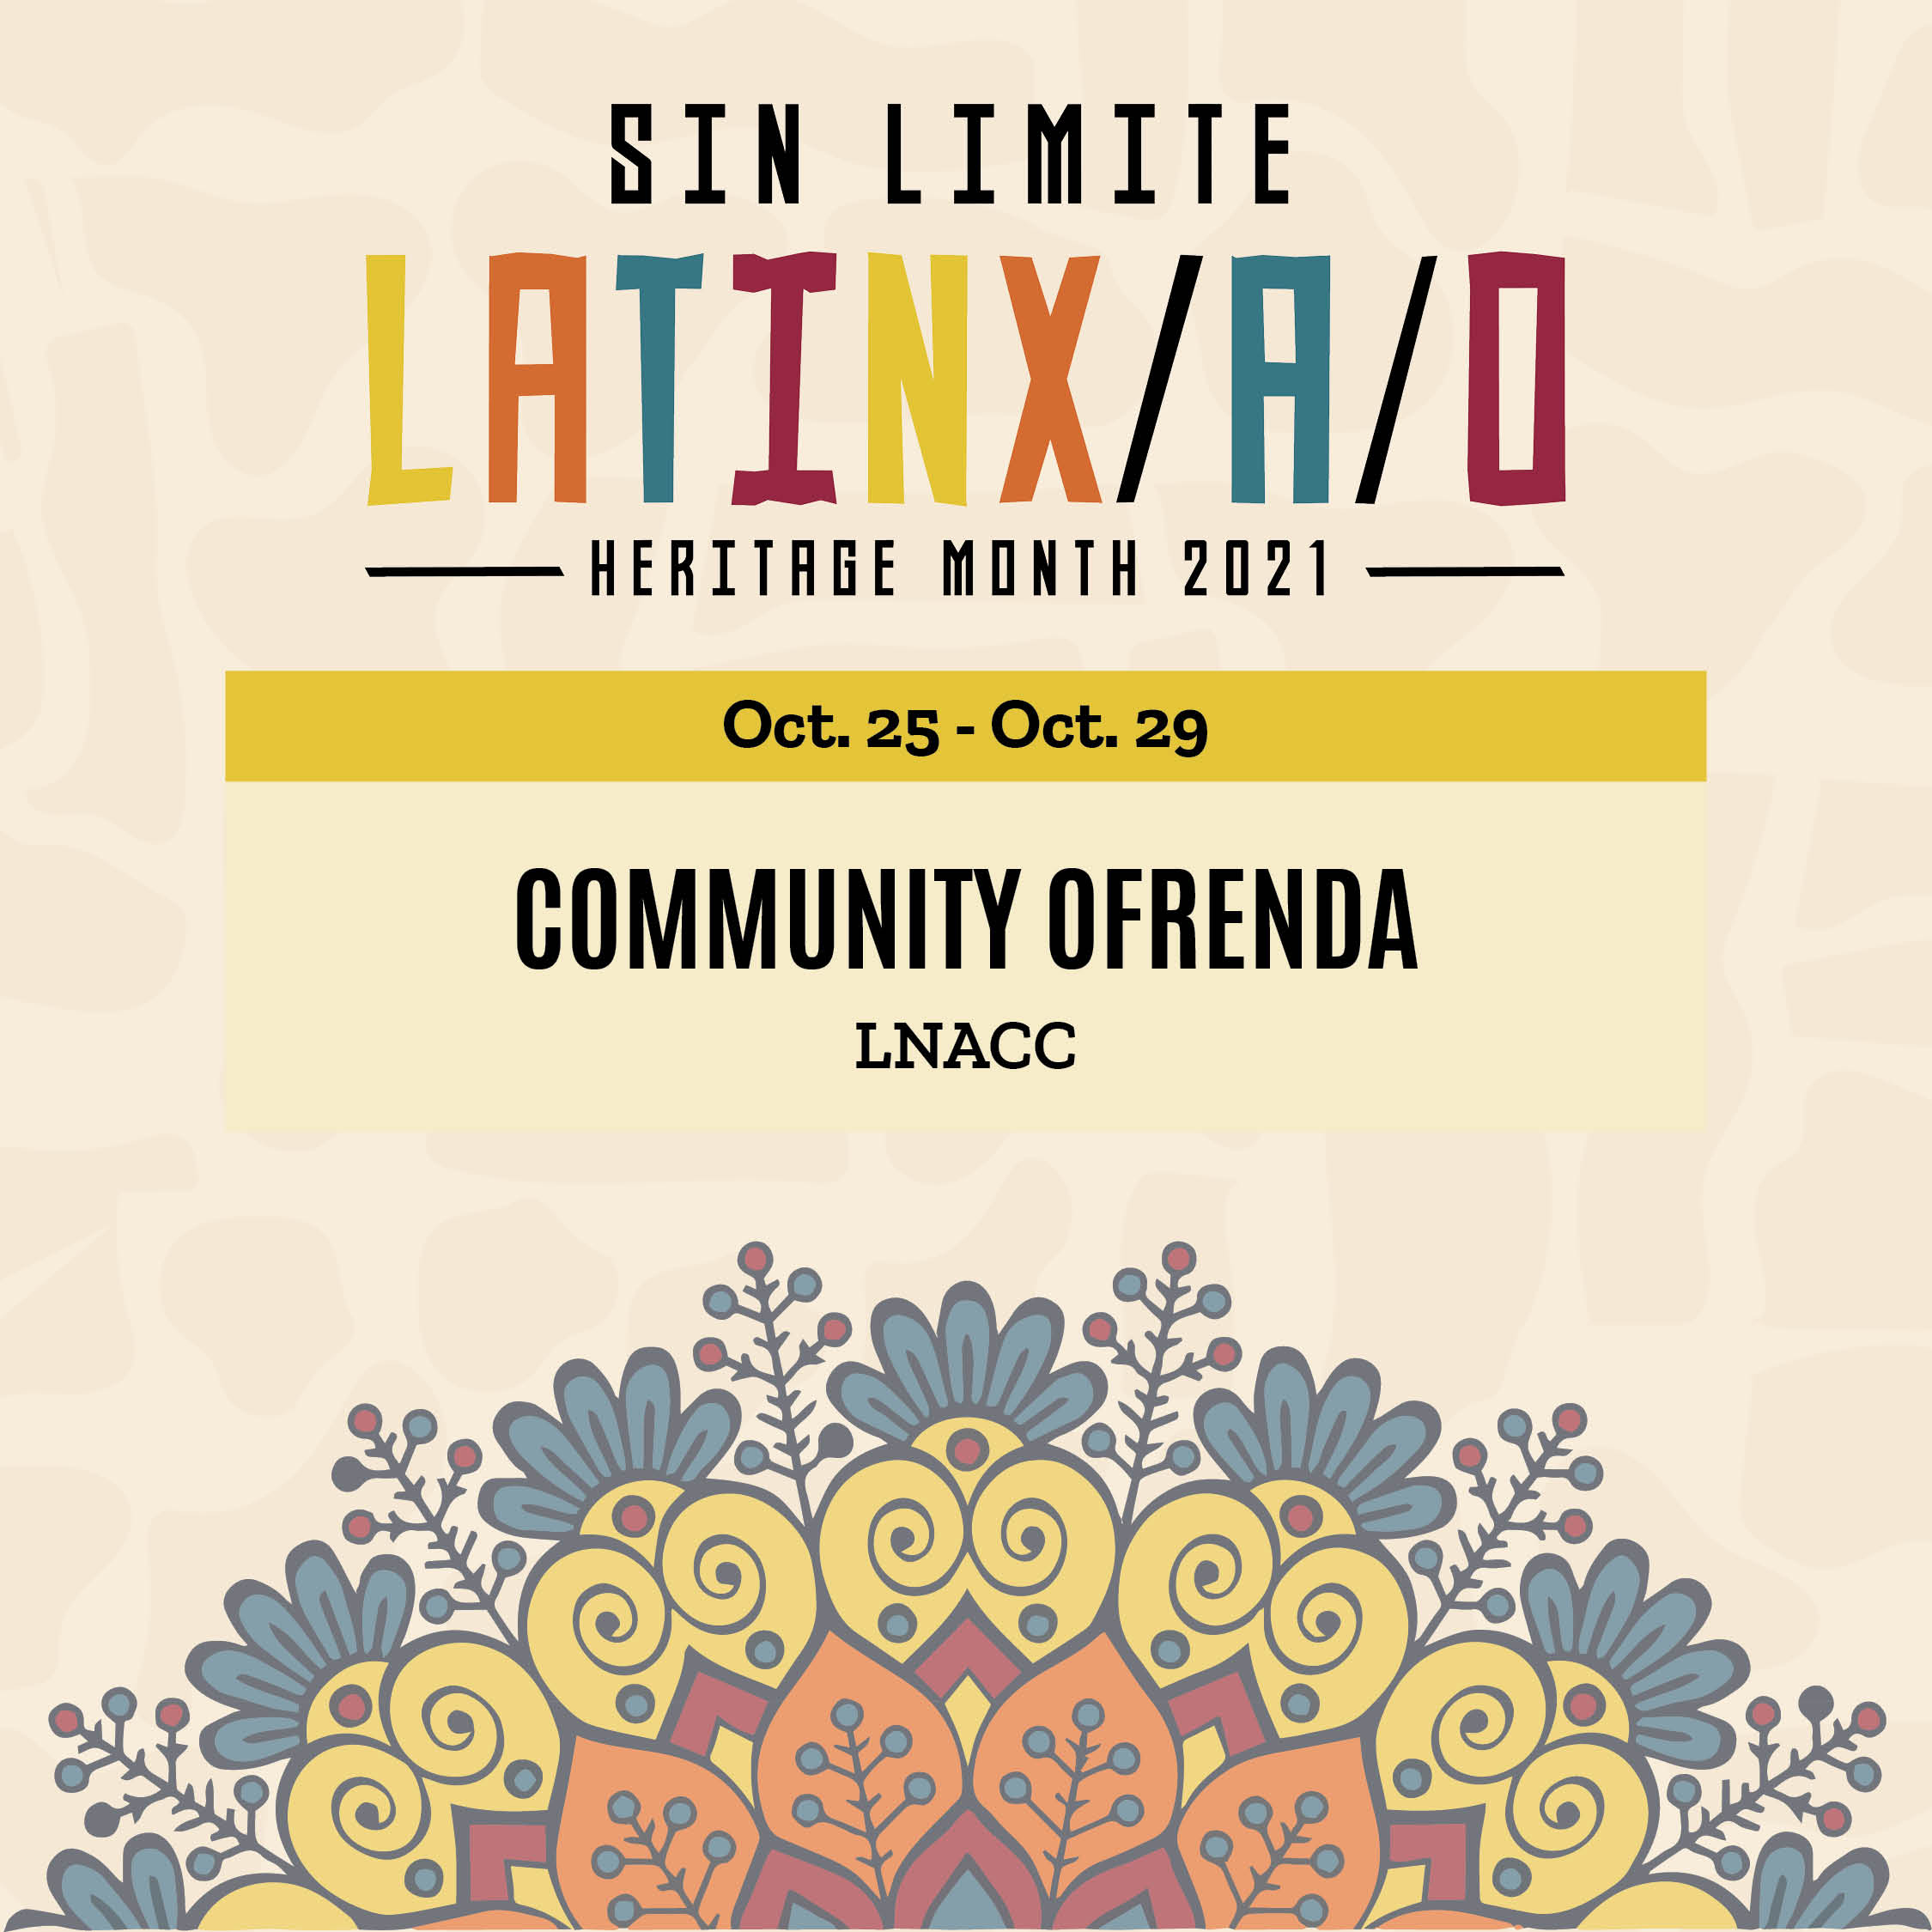 A floral design graphic with text that says 'SIN LIMITE LATINX/A/O HERITAGE MONTH 2021 Oct.25-Oct.29 25 Oct. 29 COMMUNITY OFRENDA LNACC'